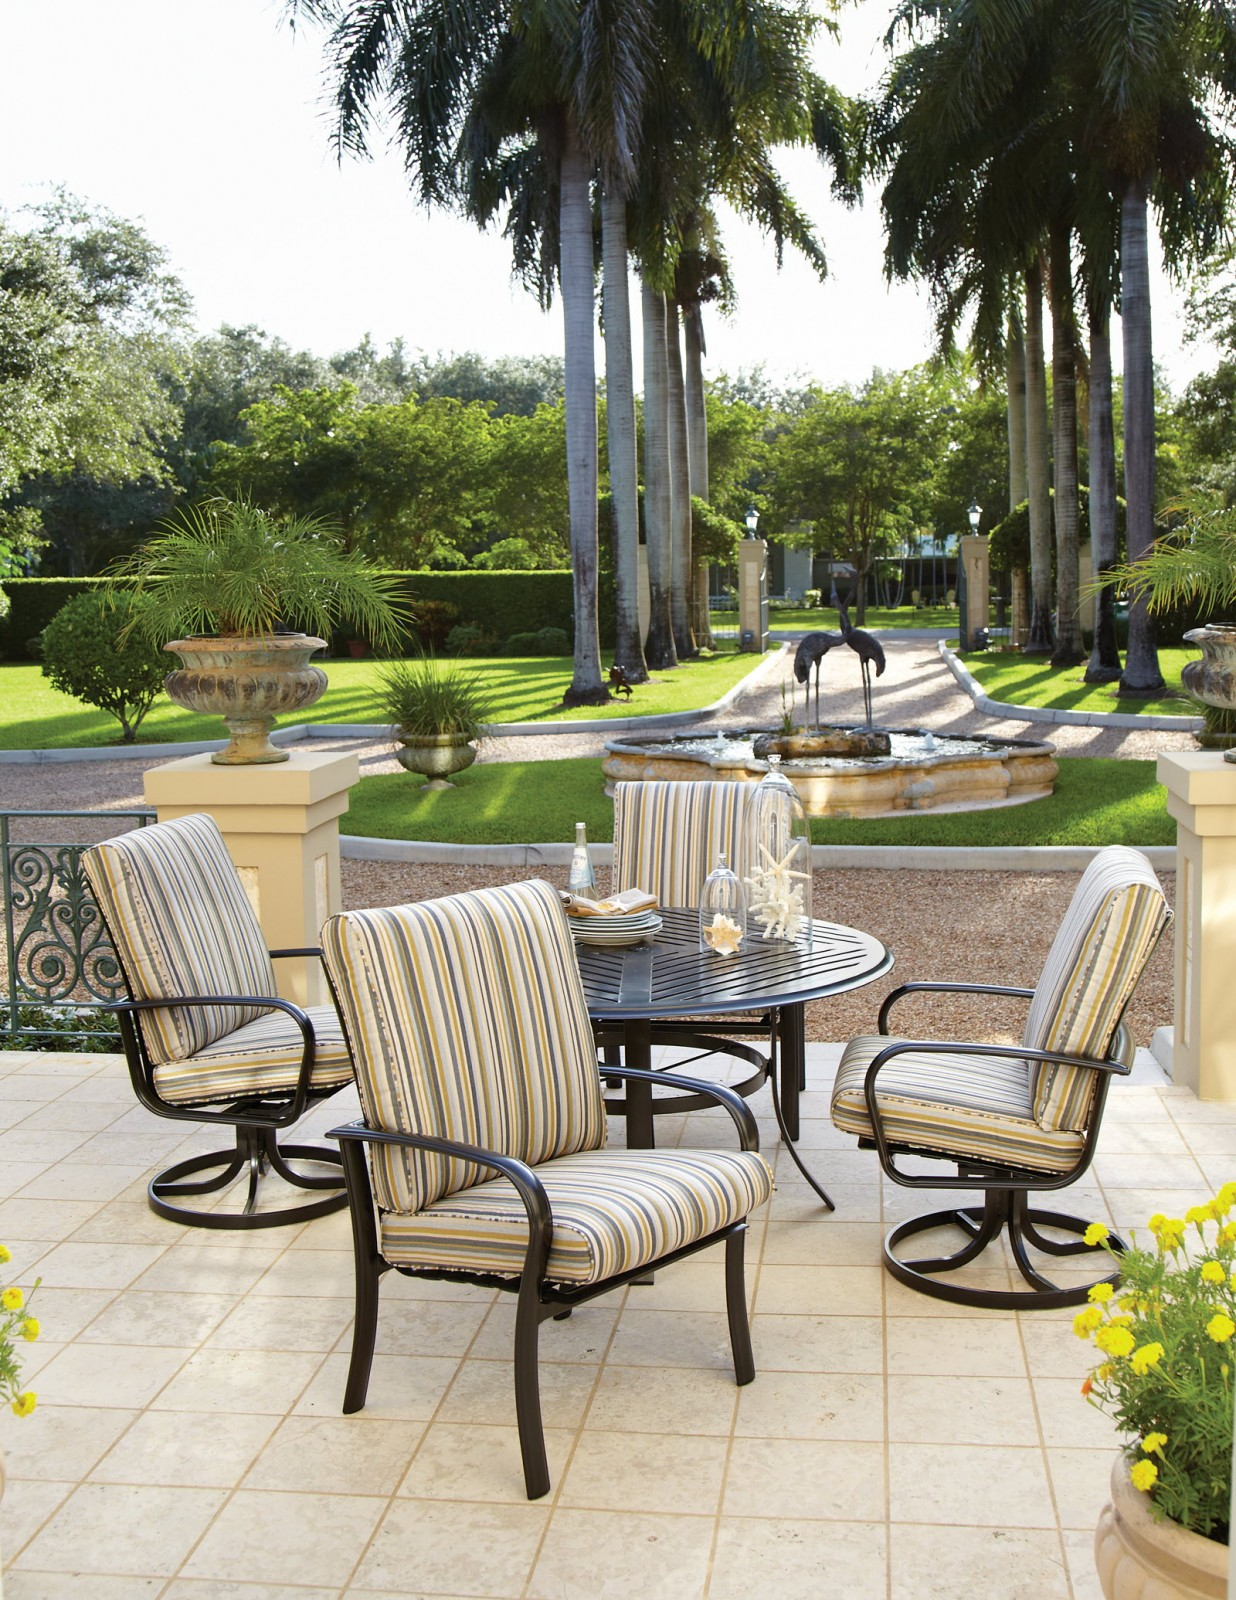 Winston Outdoor Furniture Sale Continues through March ...